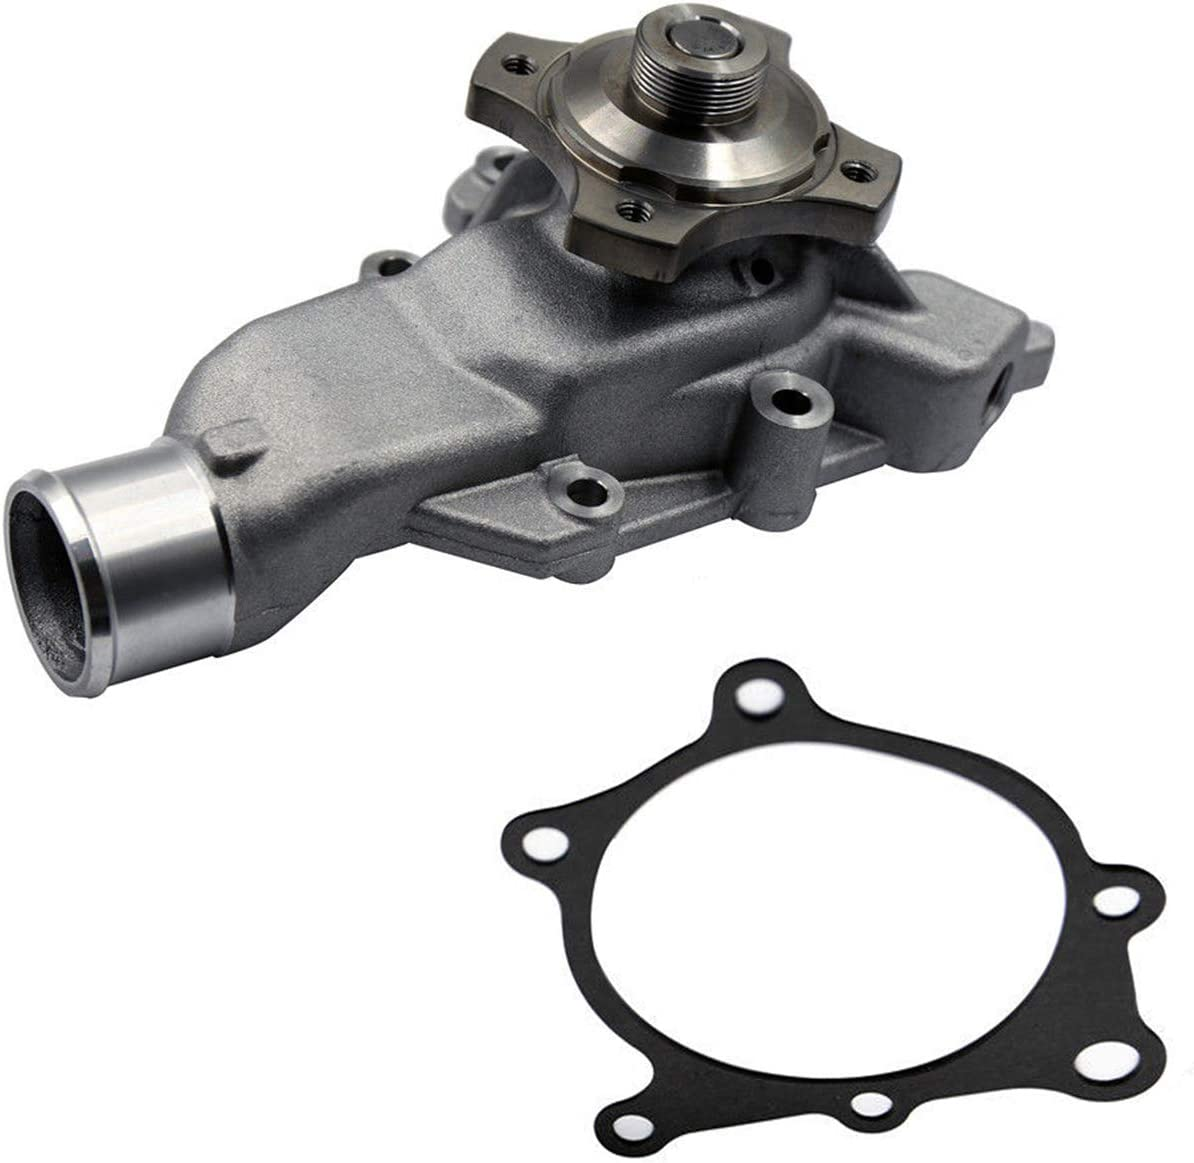 Maxfavor Water 5% OFF Pump Fit for Jeep Wrangler 2002 2001 20 2000 TJ 1 year warranty